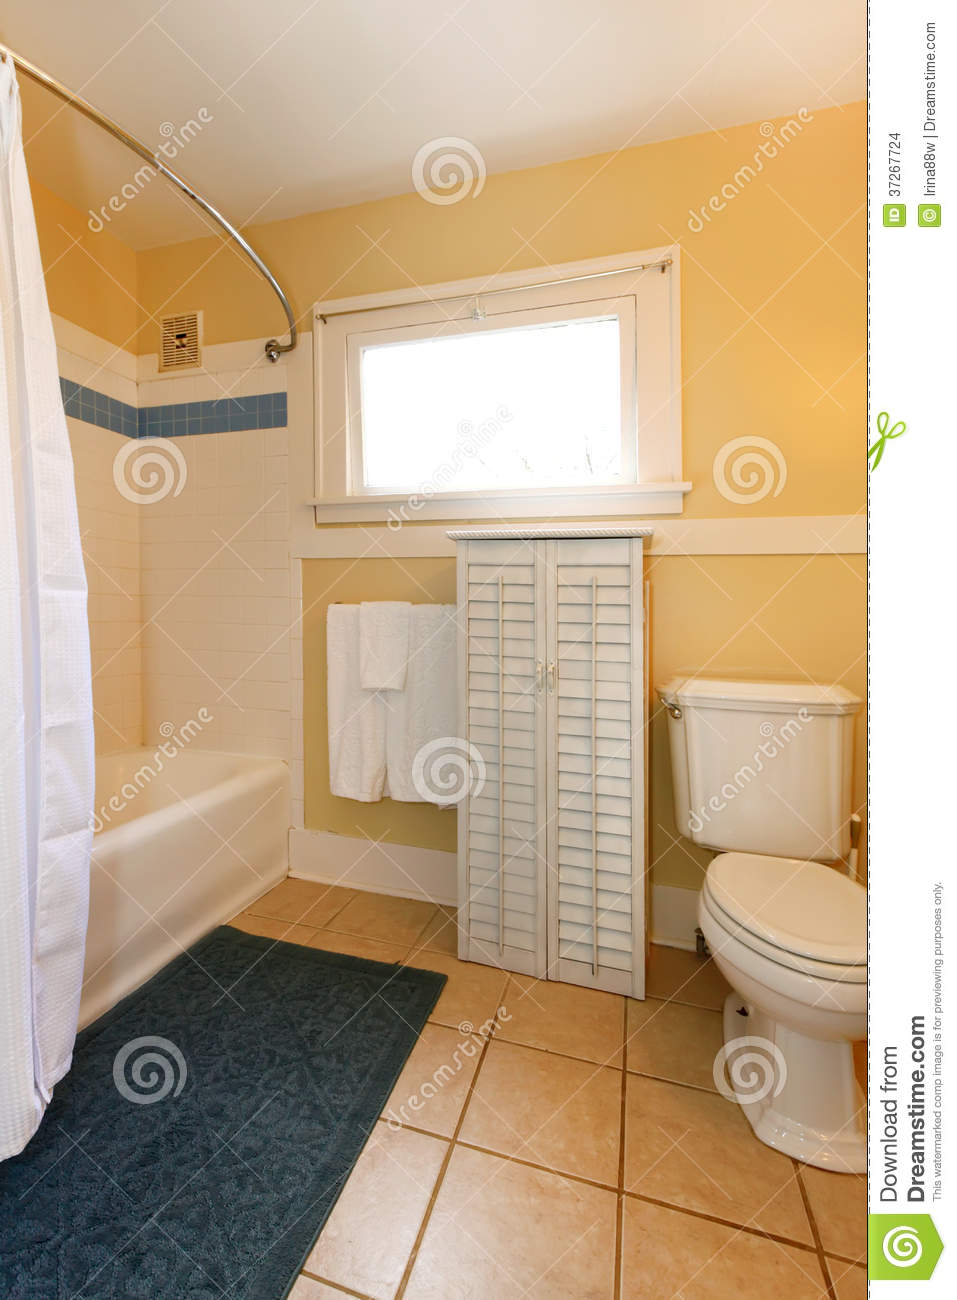 Yellow and beige cozy bathroom stock photo image of - Small white bathroom cabinet floor ...